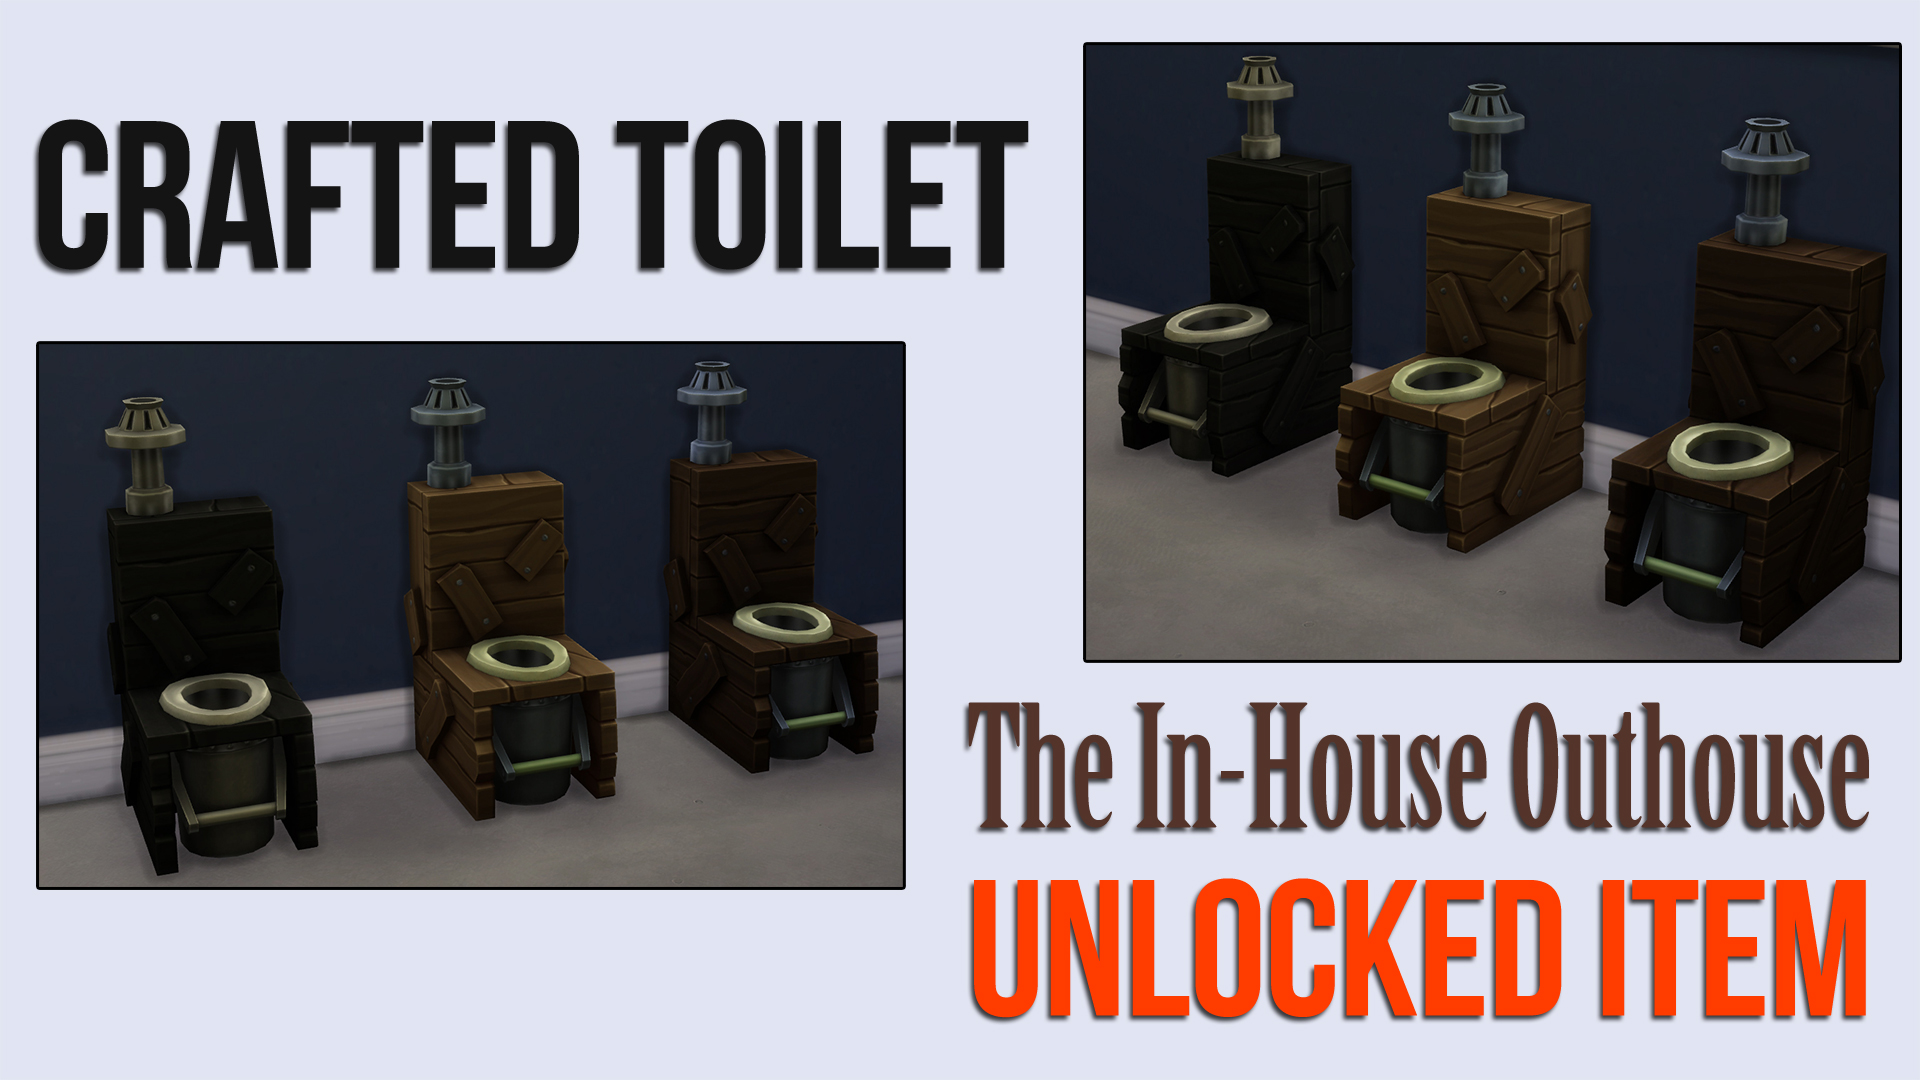 Crafted Toilet The In-House Outhouse by ironleo78